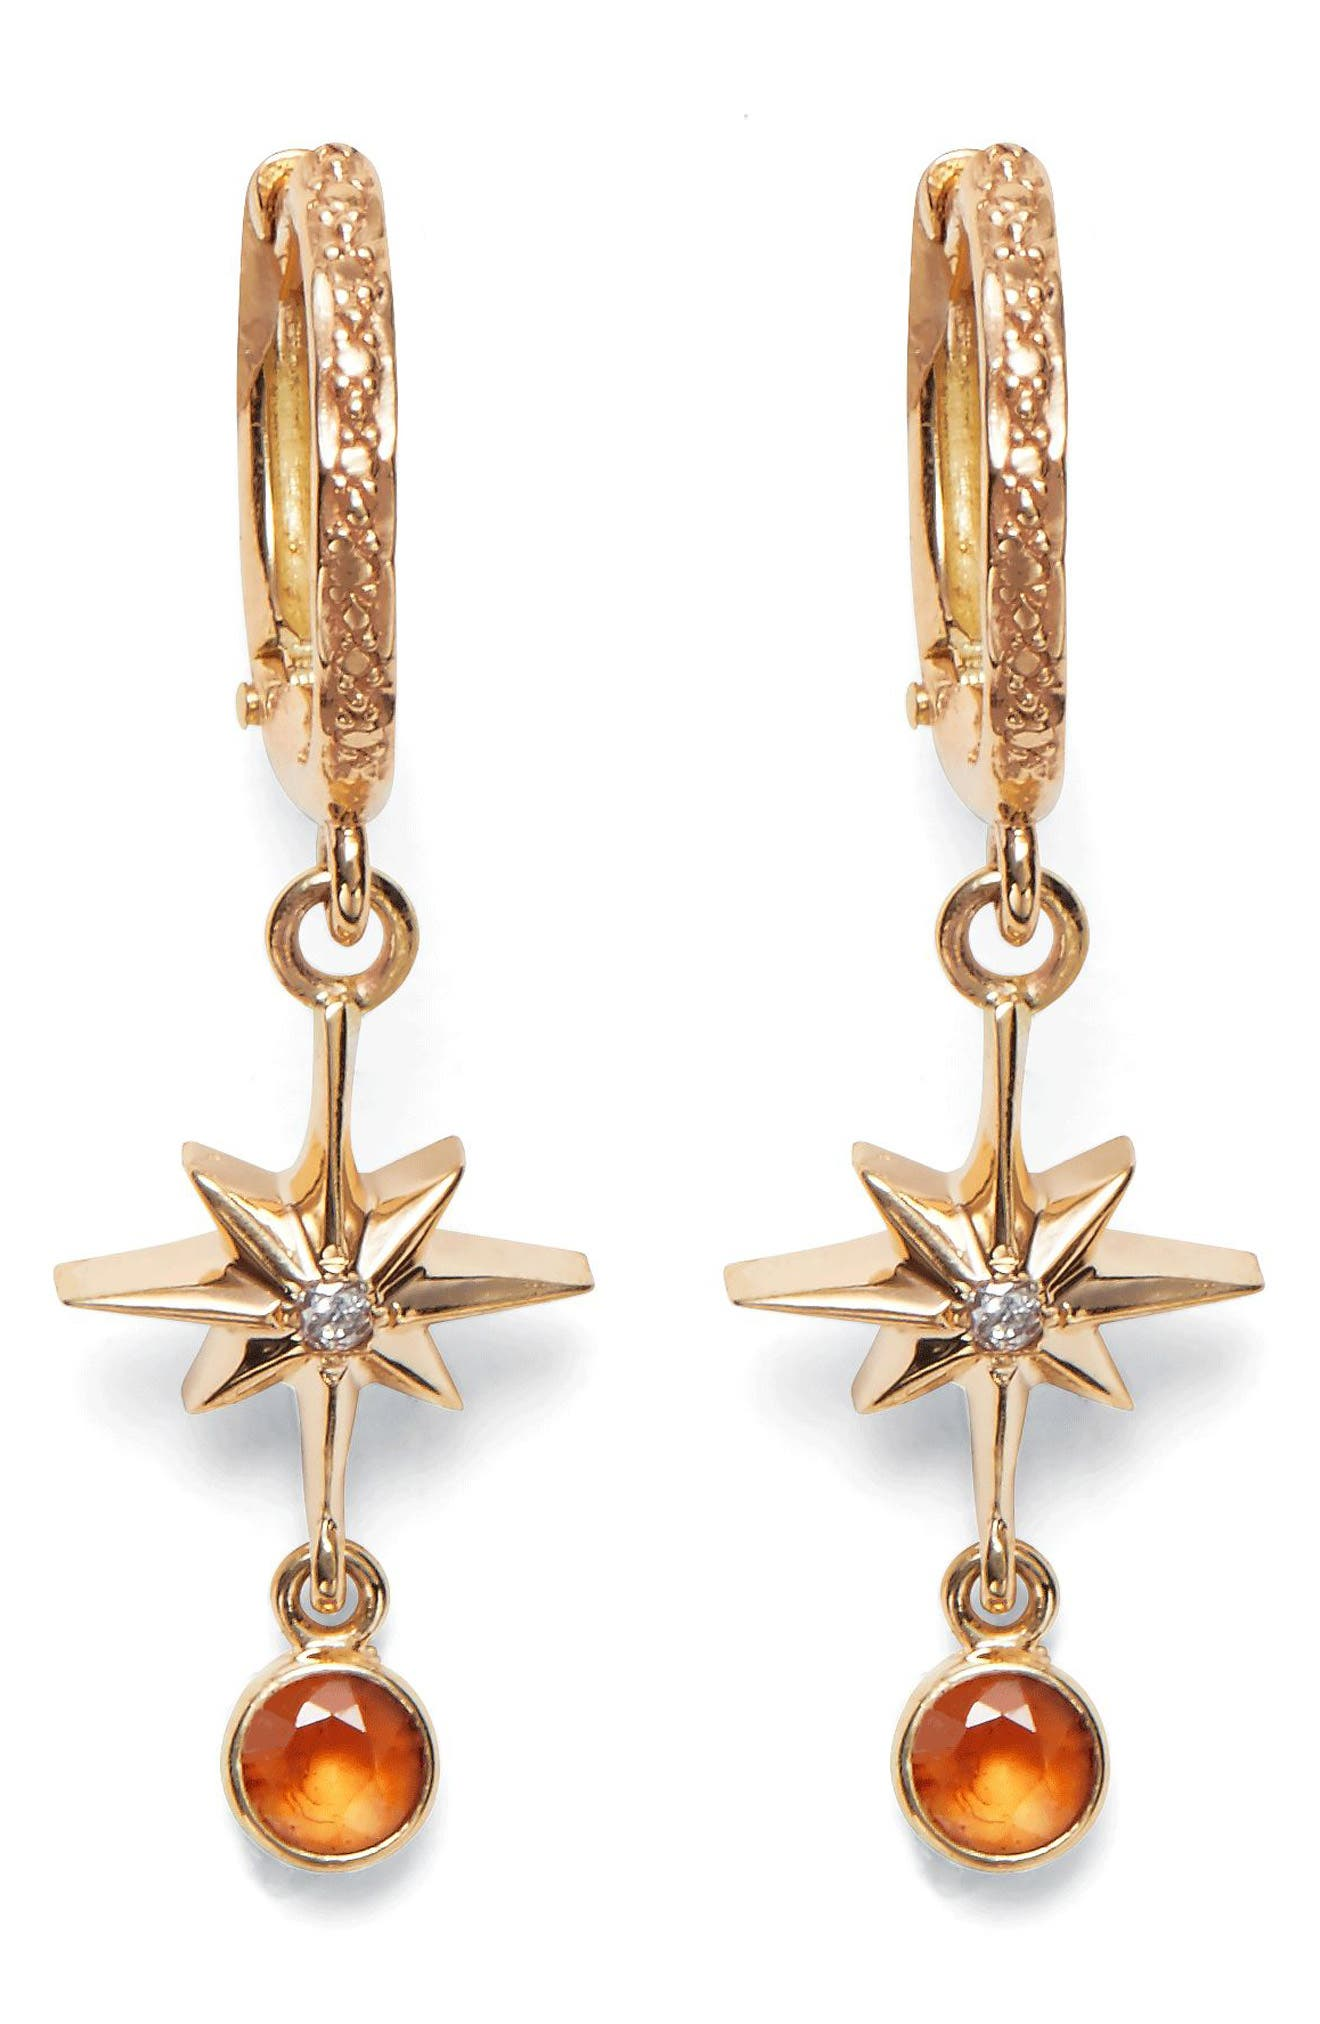 Lucky Star Diamond & Sapphire Earrings,                             Main thumbnail 1, color,                             YELLOW GOLD